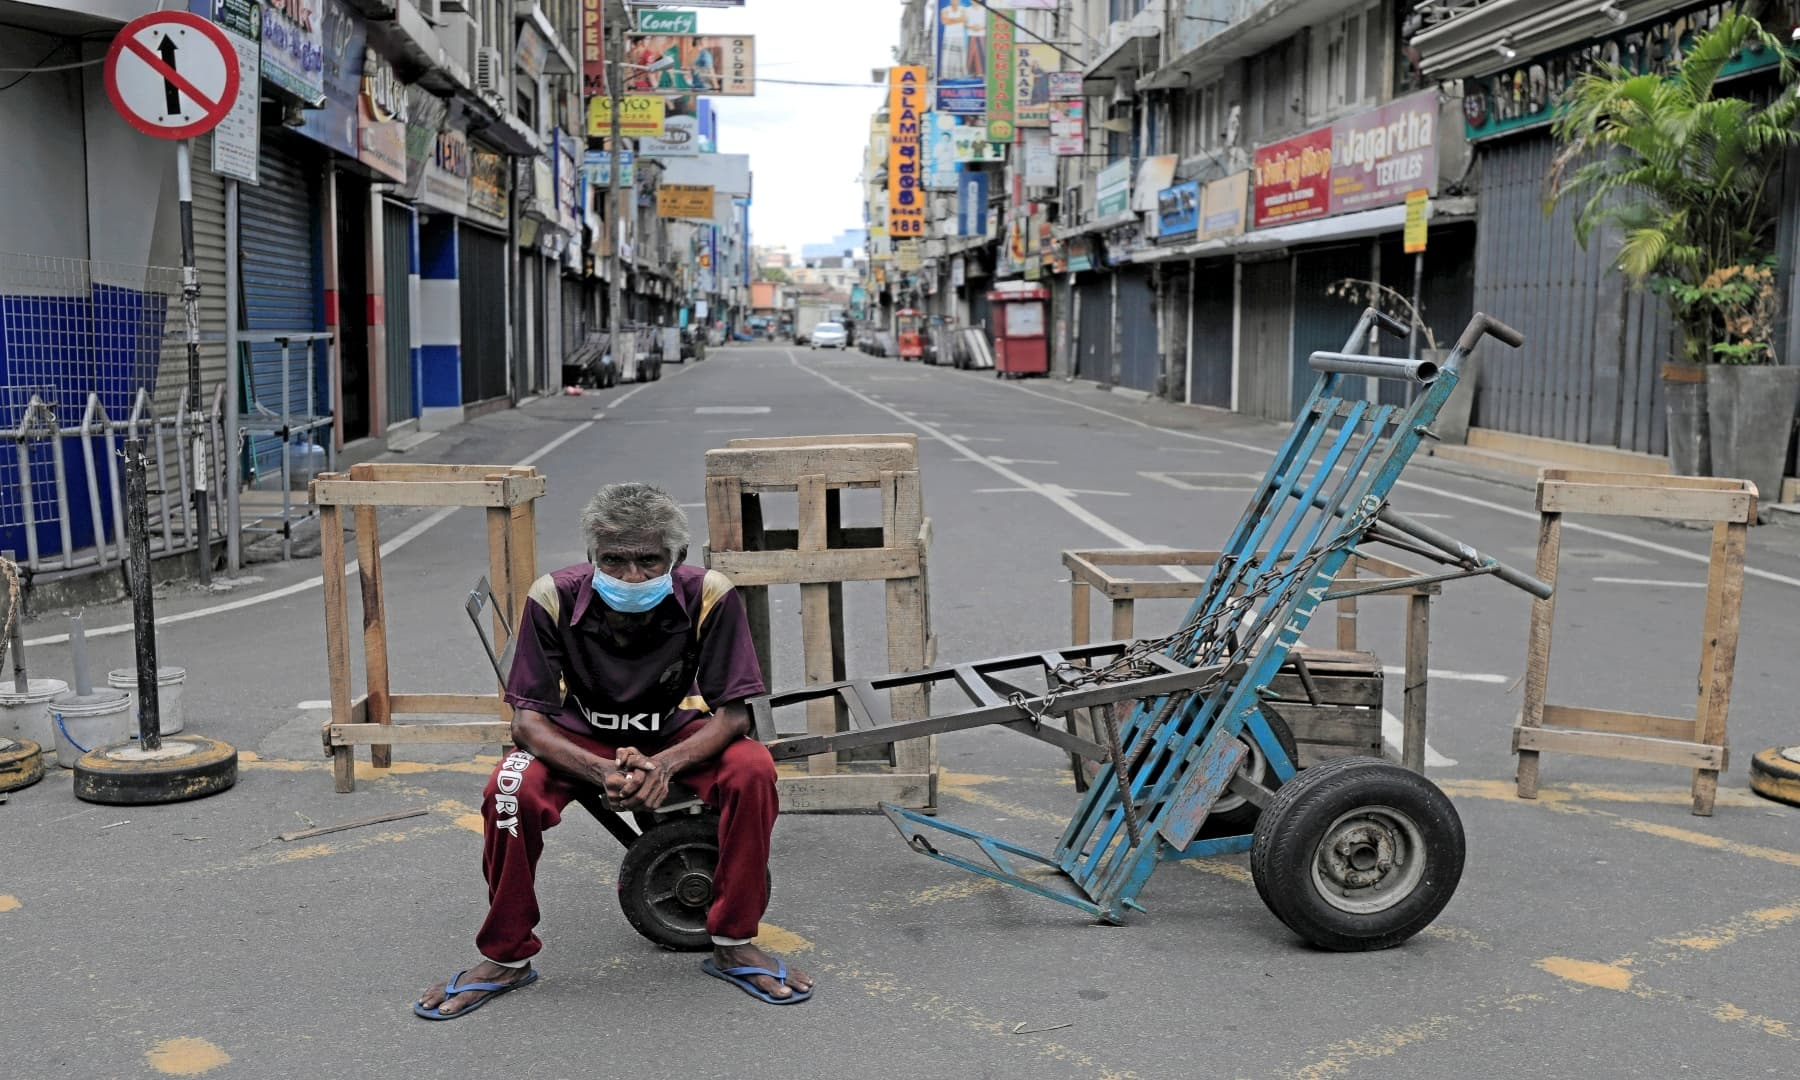 A labourer sits on a cart in a street with closed shops near the main market on Labour Day, during a curfew amid concerns about the spread of Covid-19 in Colombo, Sri Lanka. — Reuters